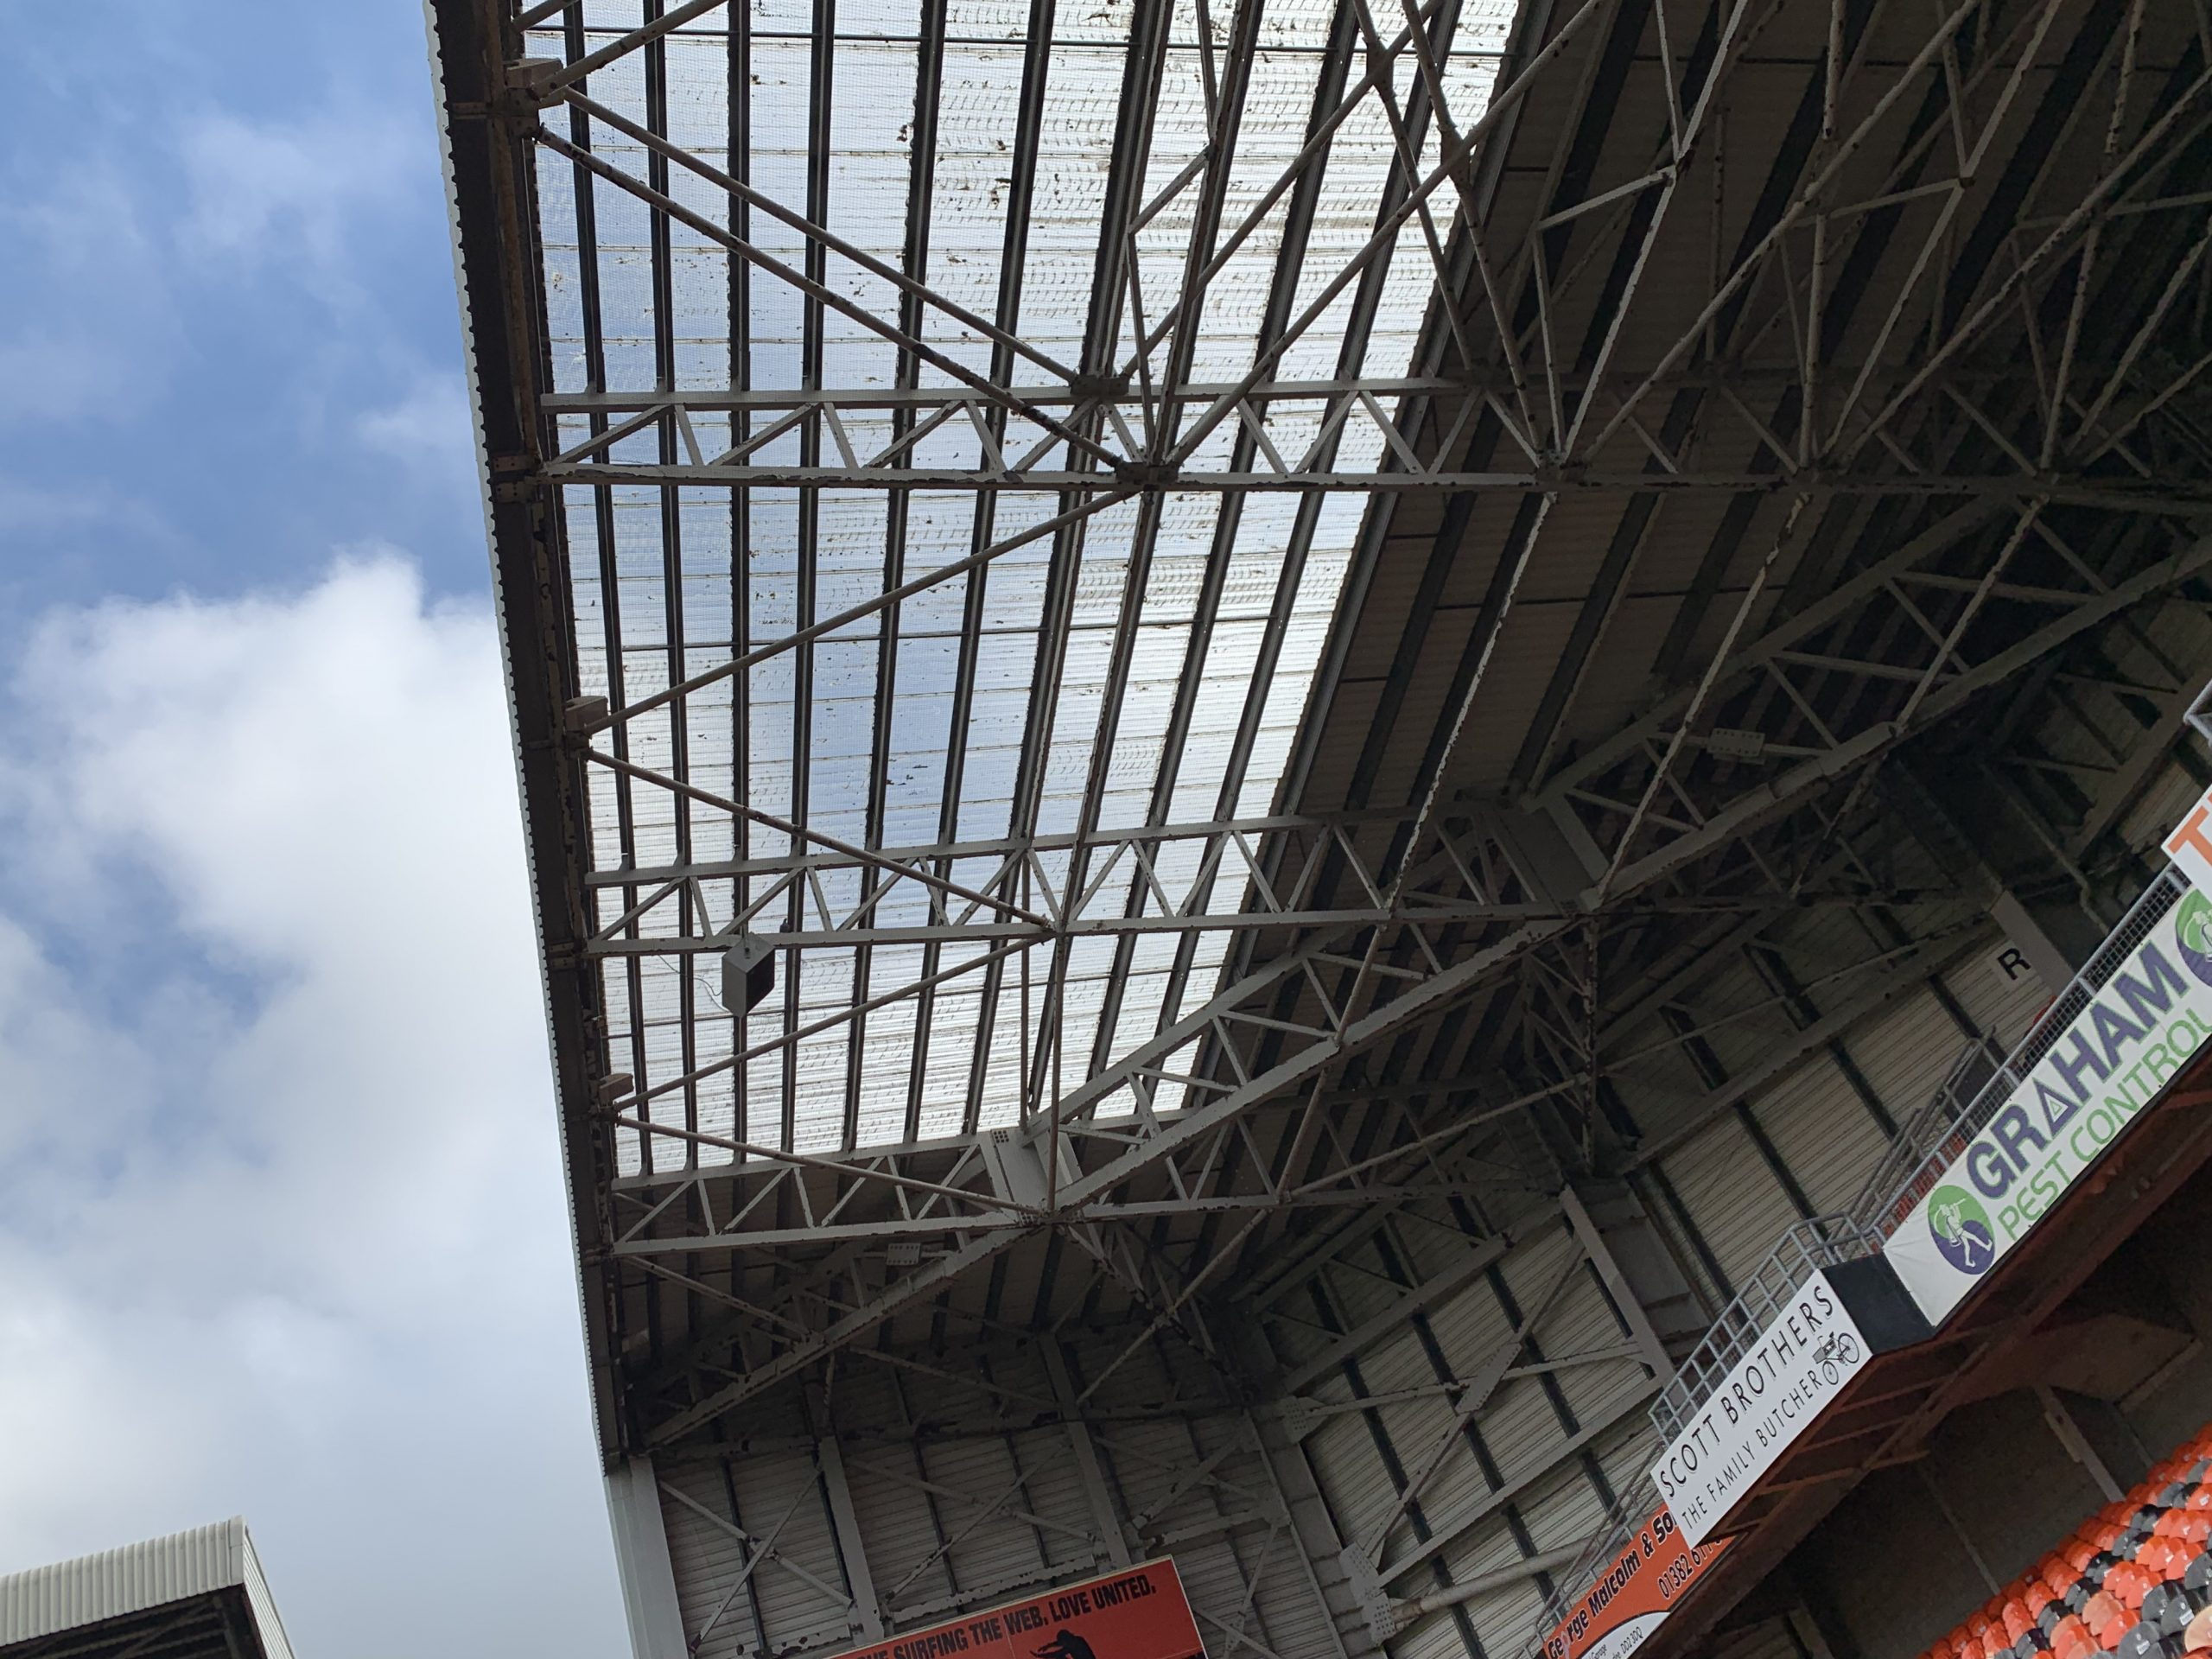 Roofwork at Tannadice park